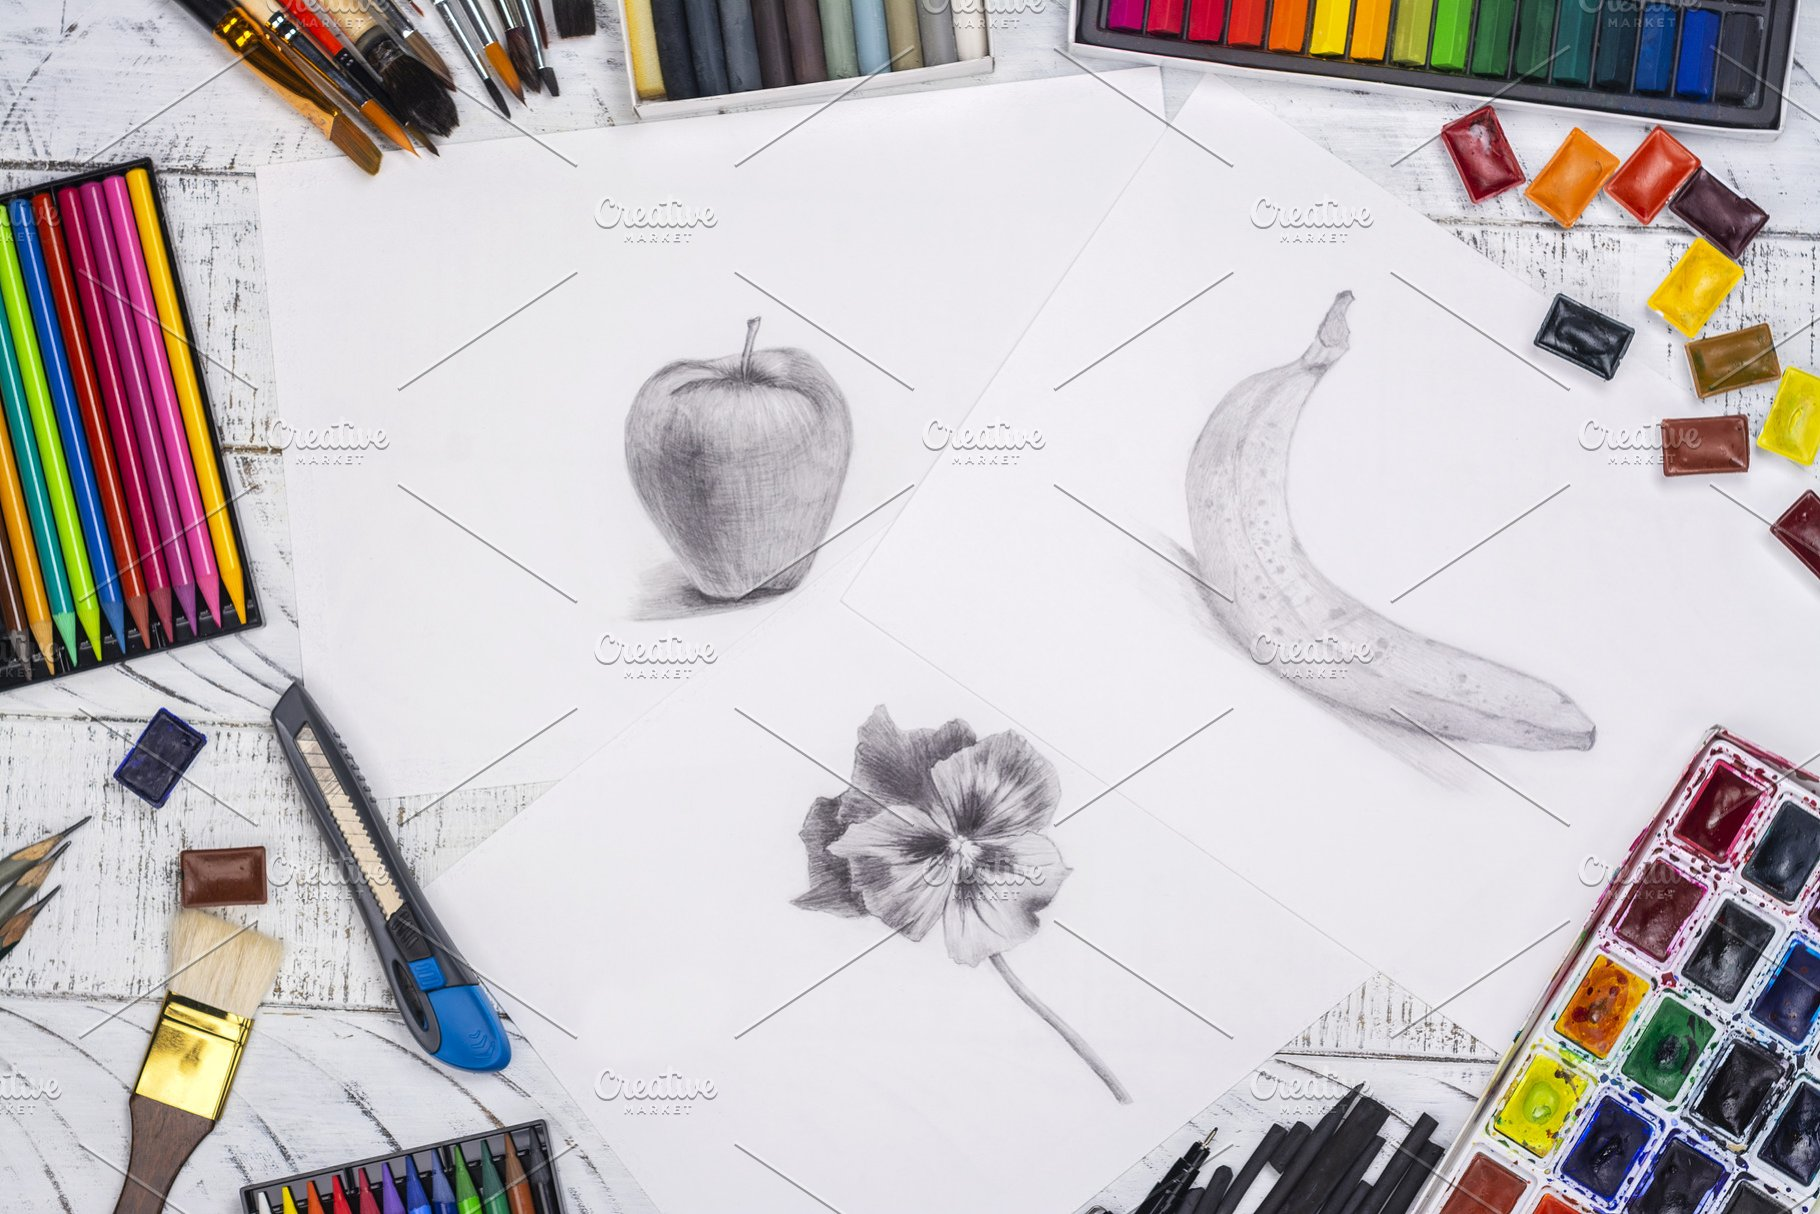 Pencil sketch of an apple